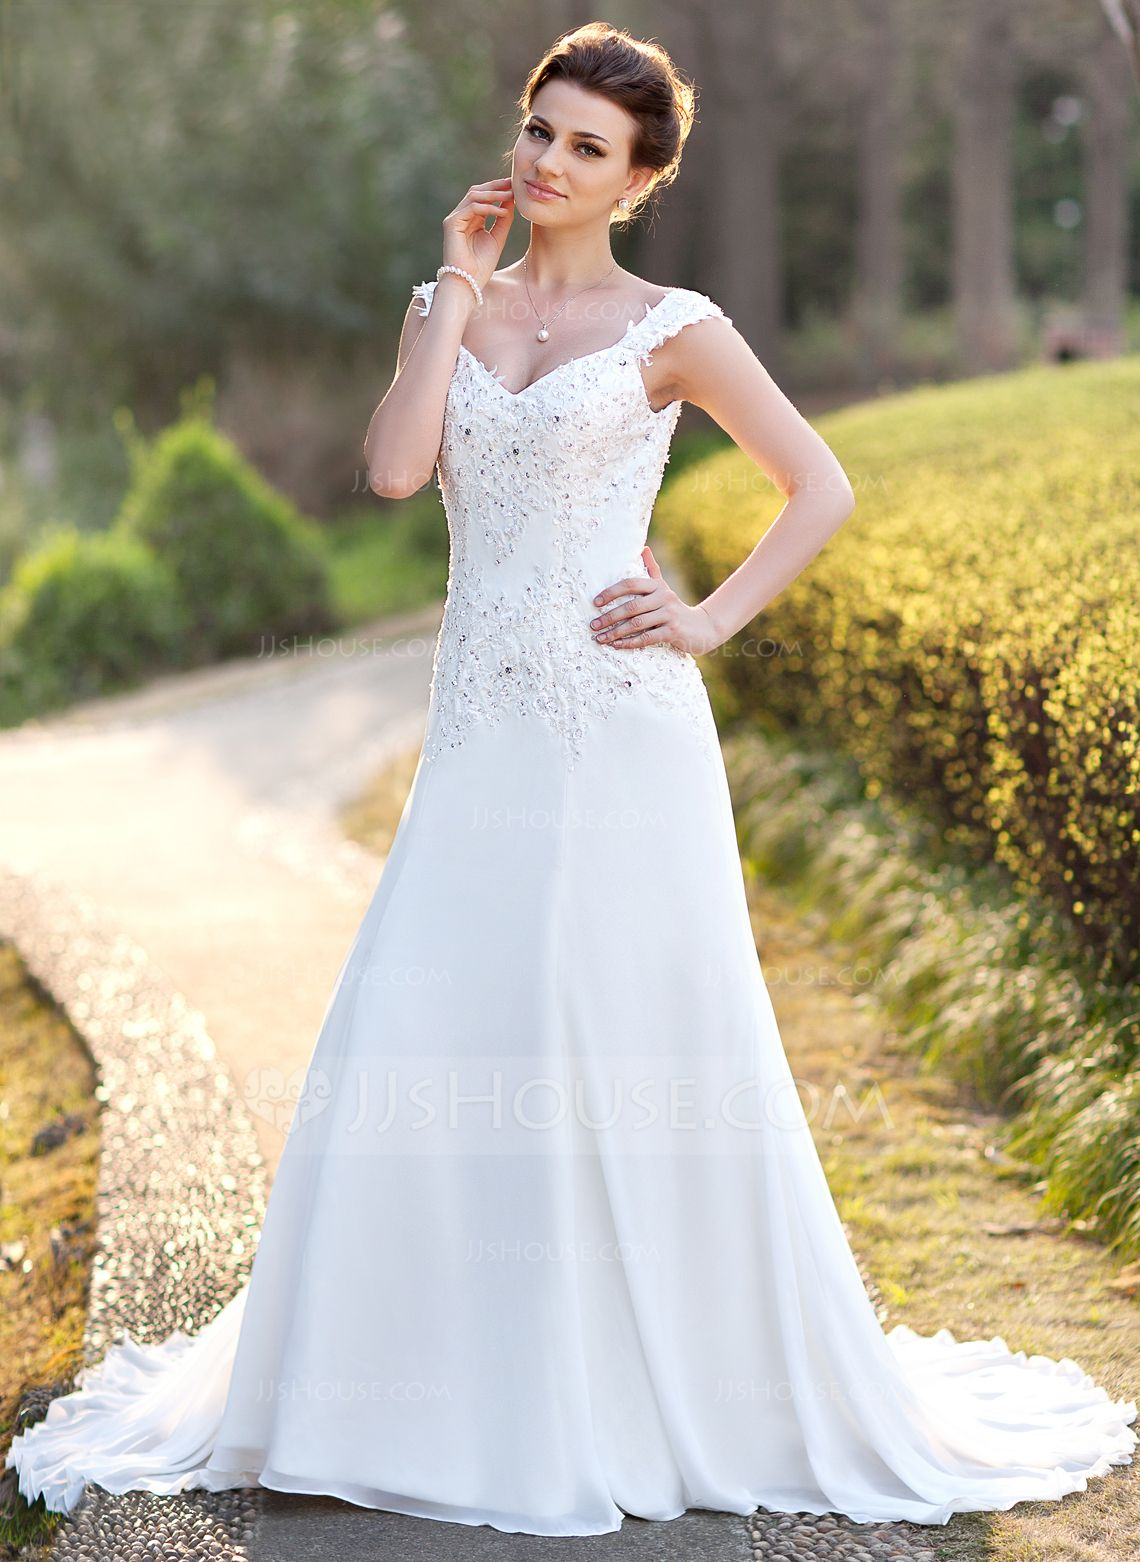 Outdoor summer wedding dresses  ALinePrincess Vneck Court Train Chiffon Wedding Dress With Lace